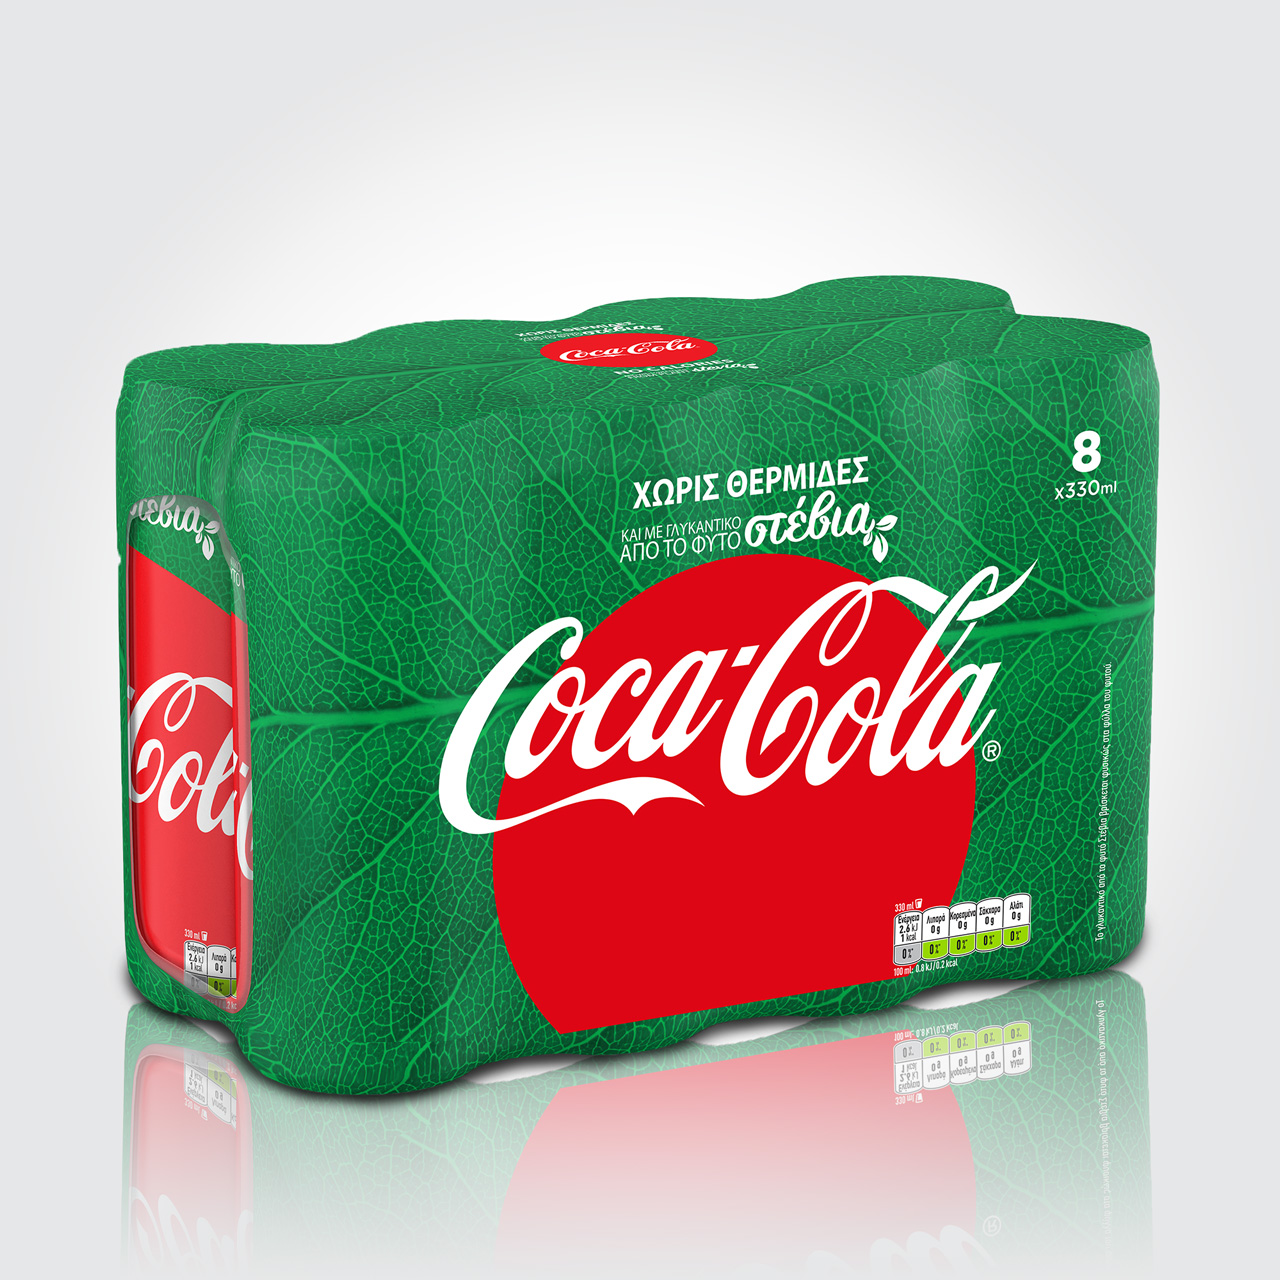 Coca-Cola Stevia redesign 8x330ml shrink wrap